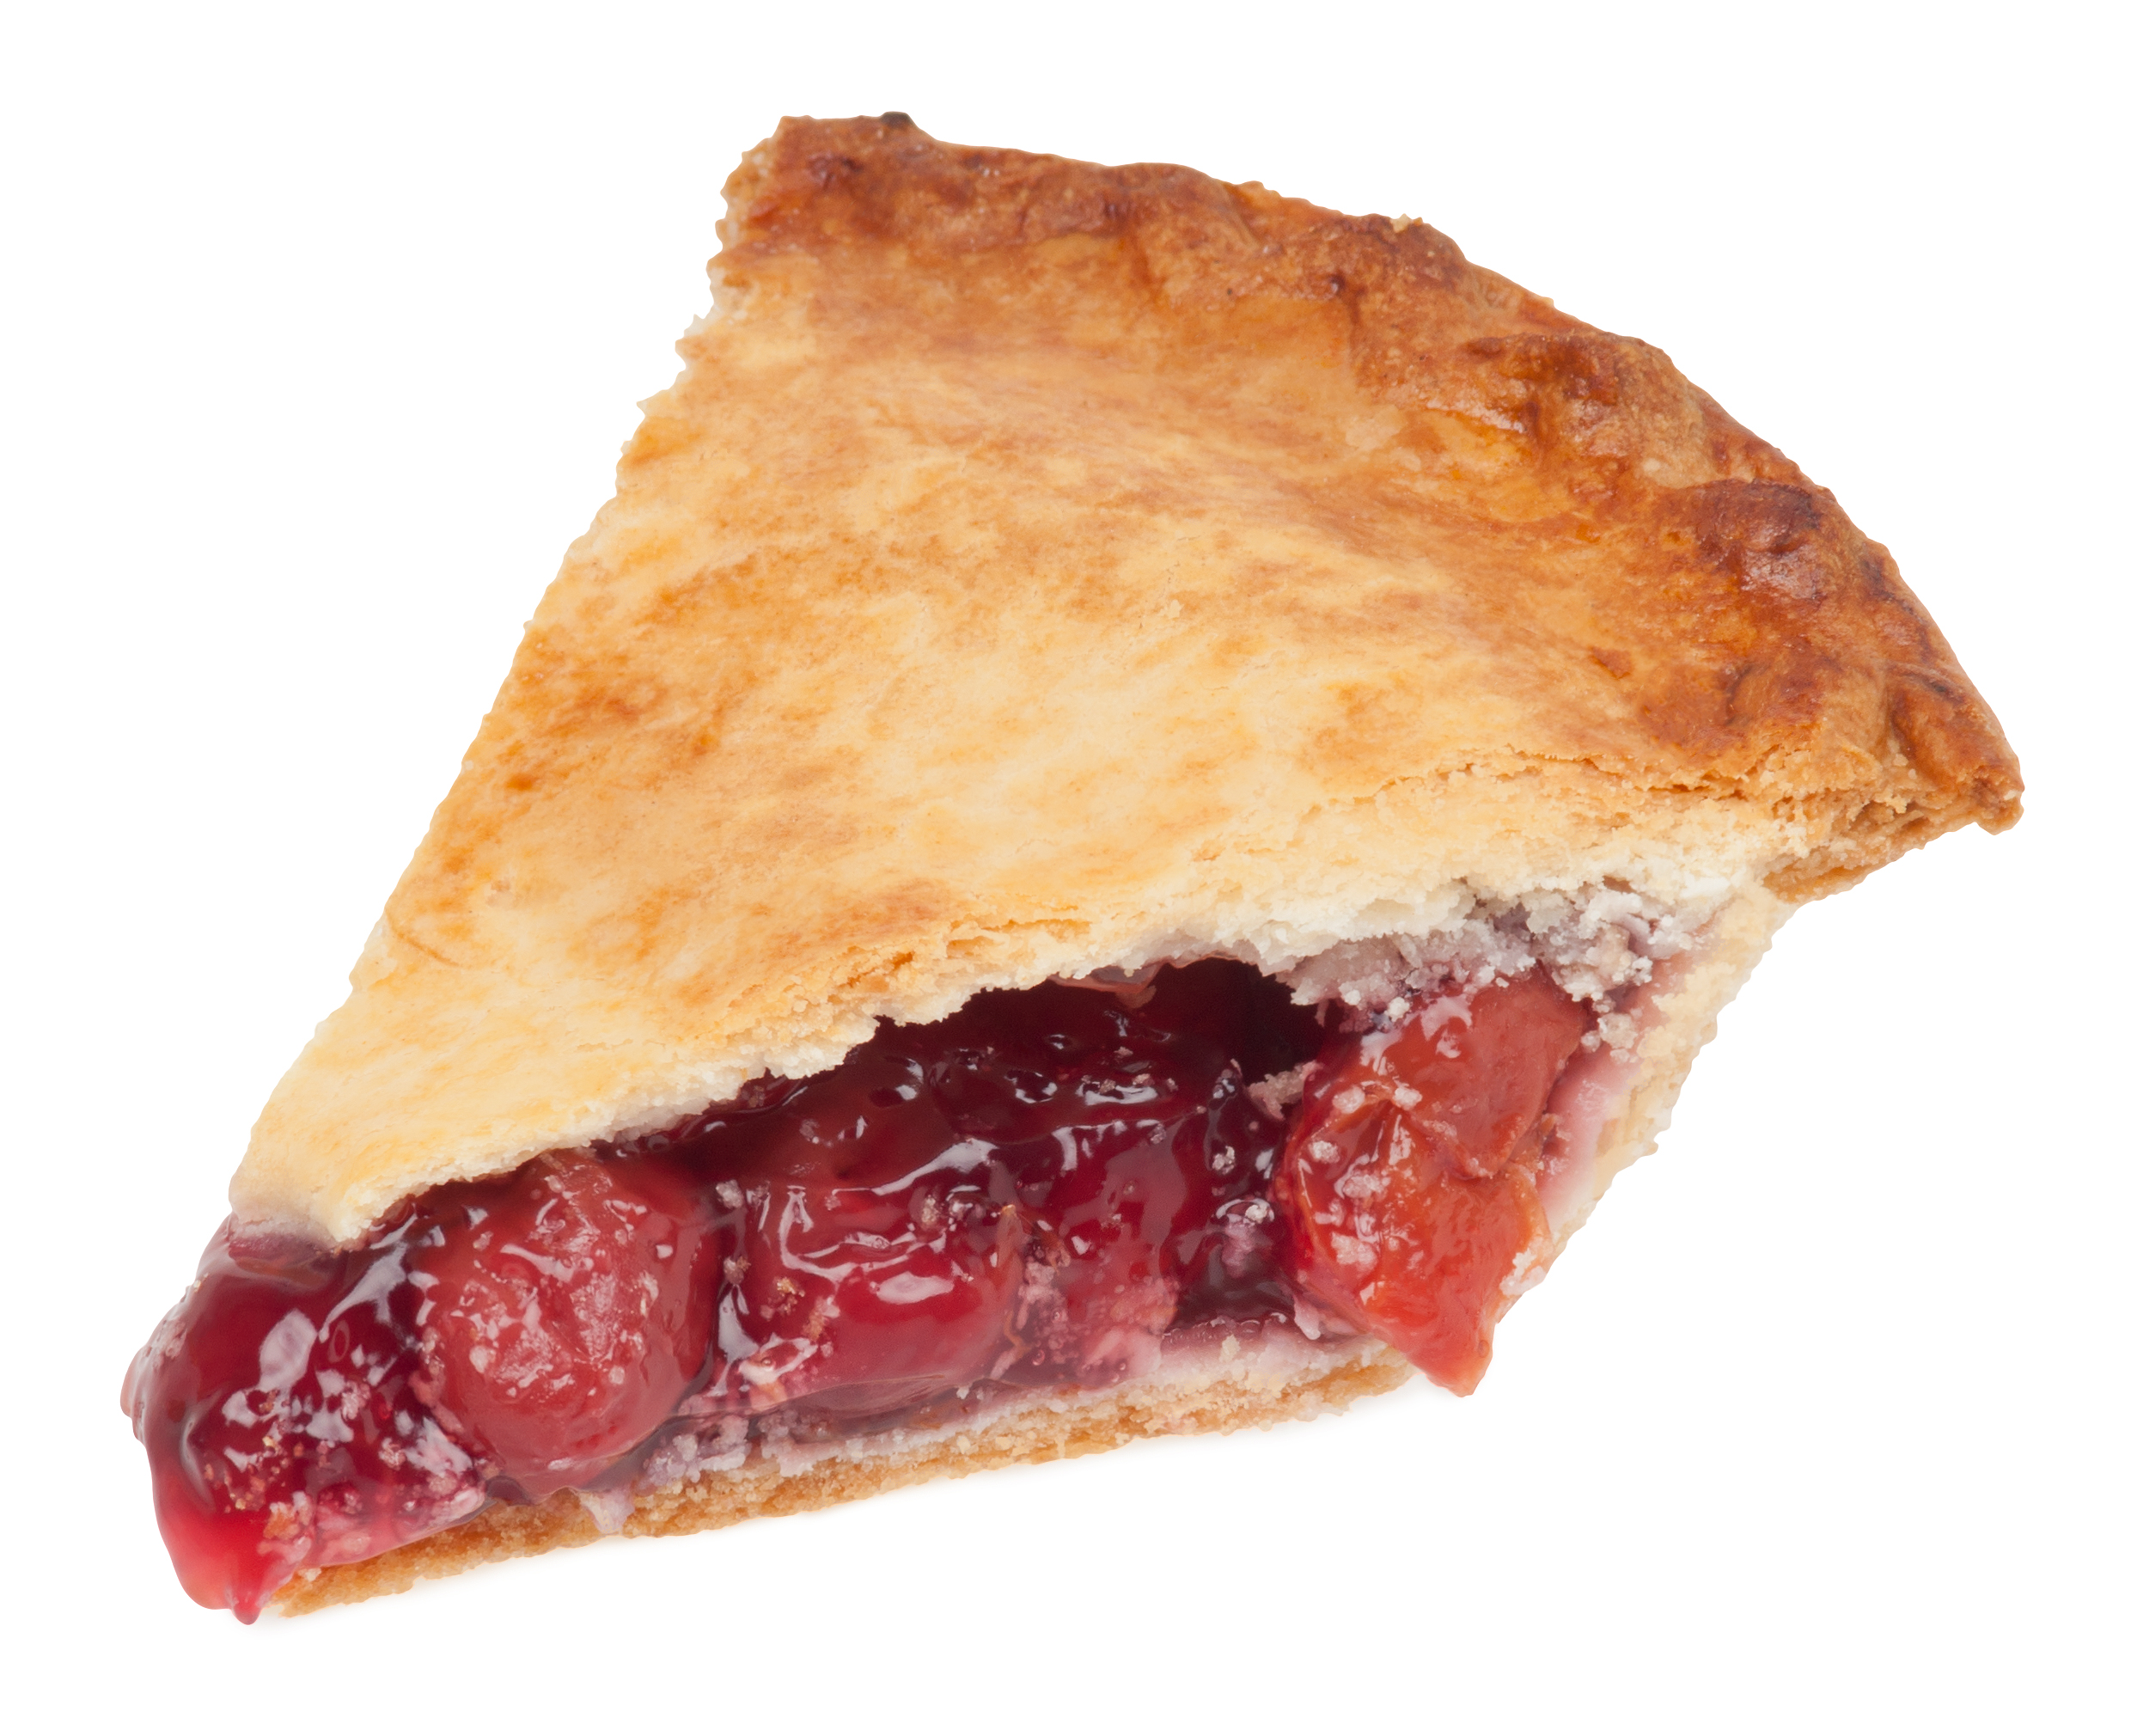 File:Cherry-Pie-Slice.jpg - Wikimedia Commons